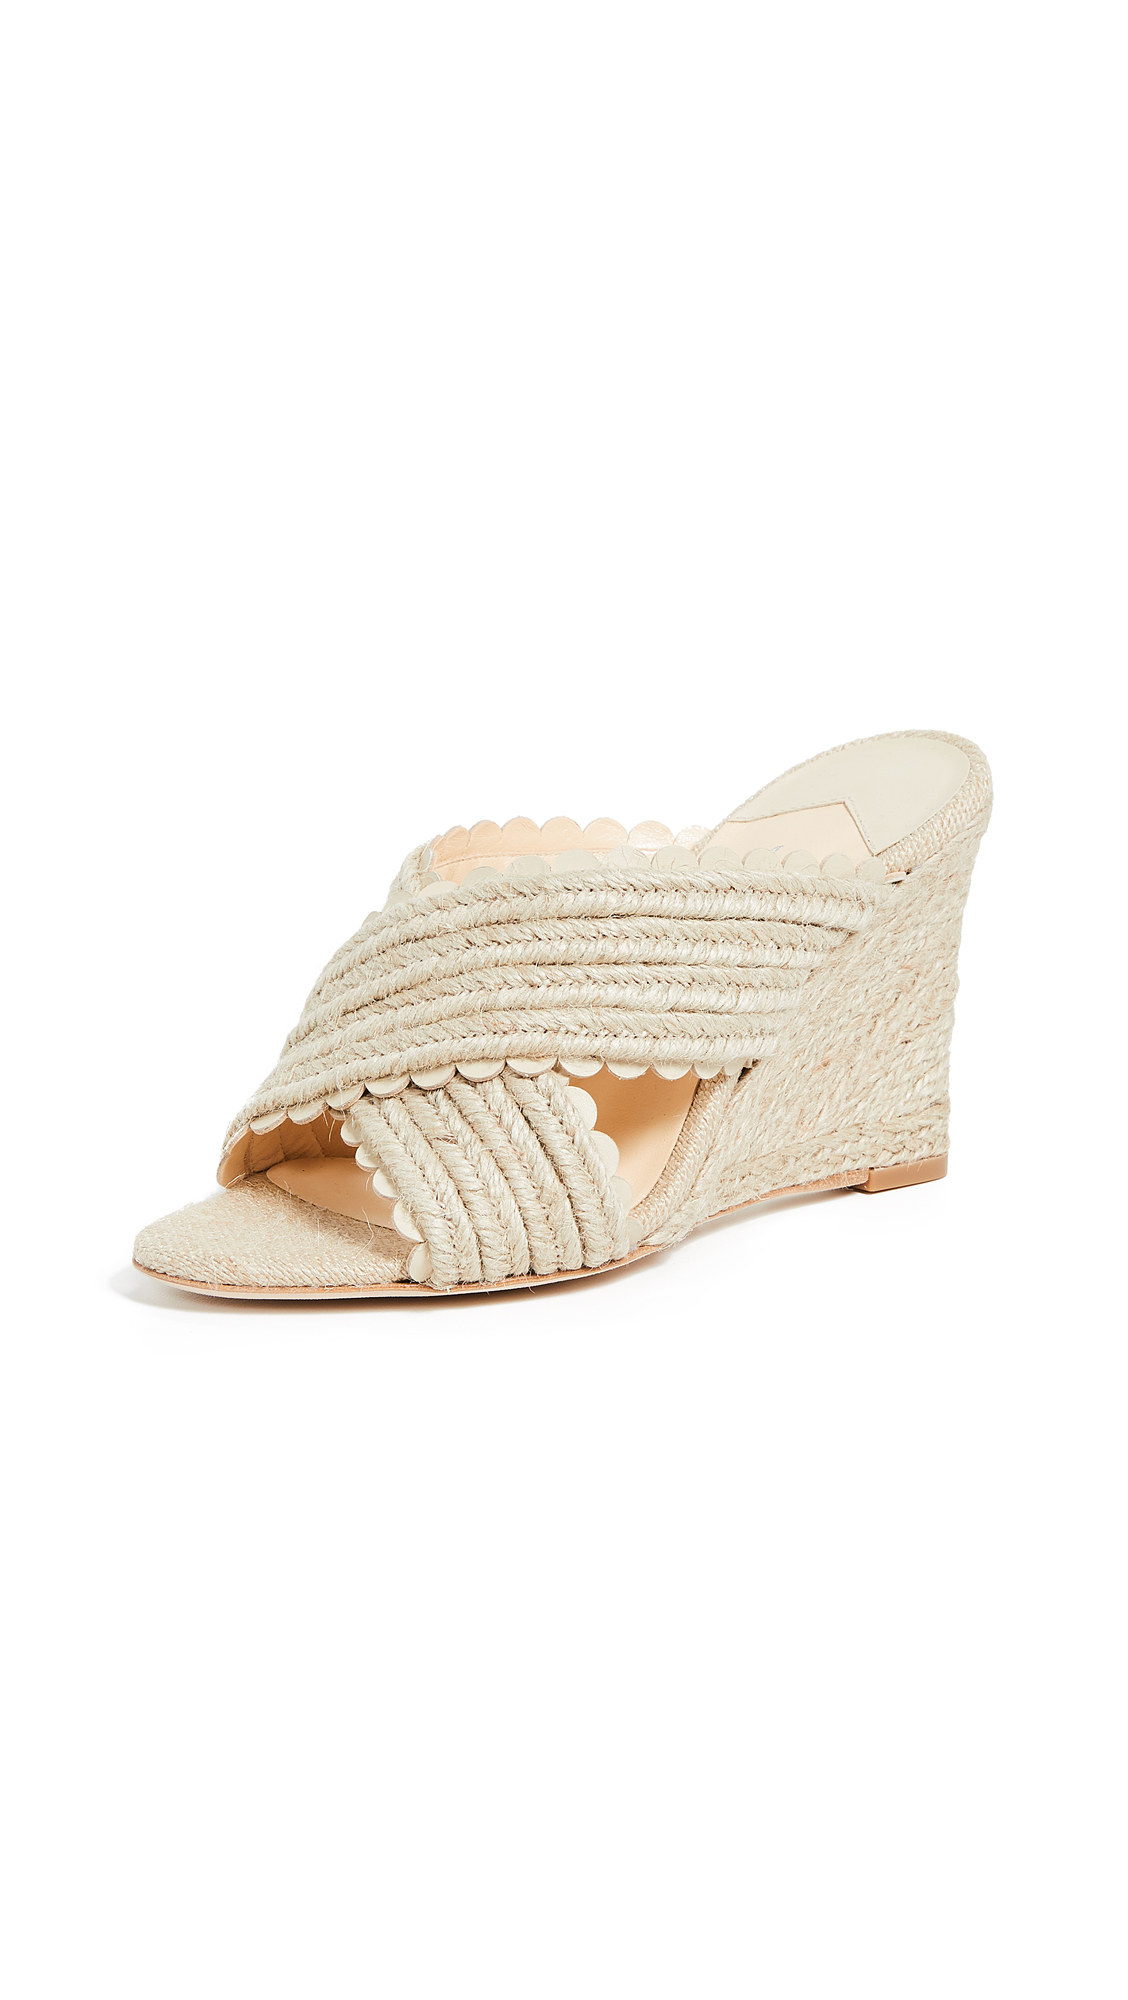 Isa Tapia Erle Wedge Espadrilles - Natural